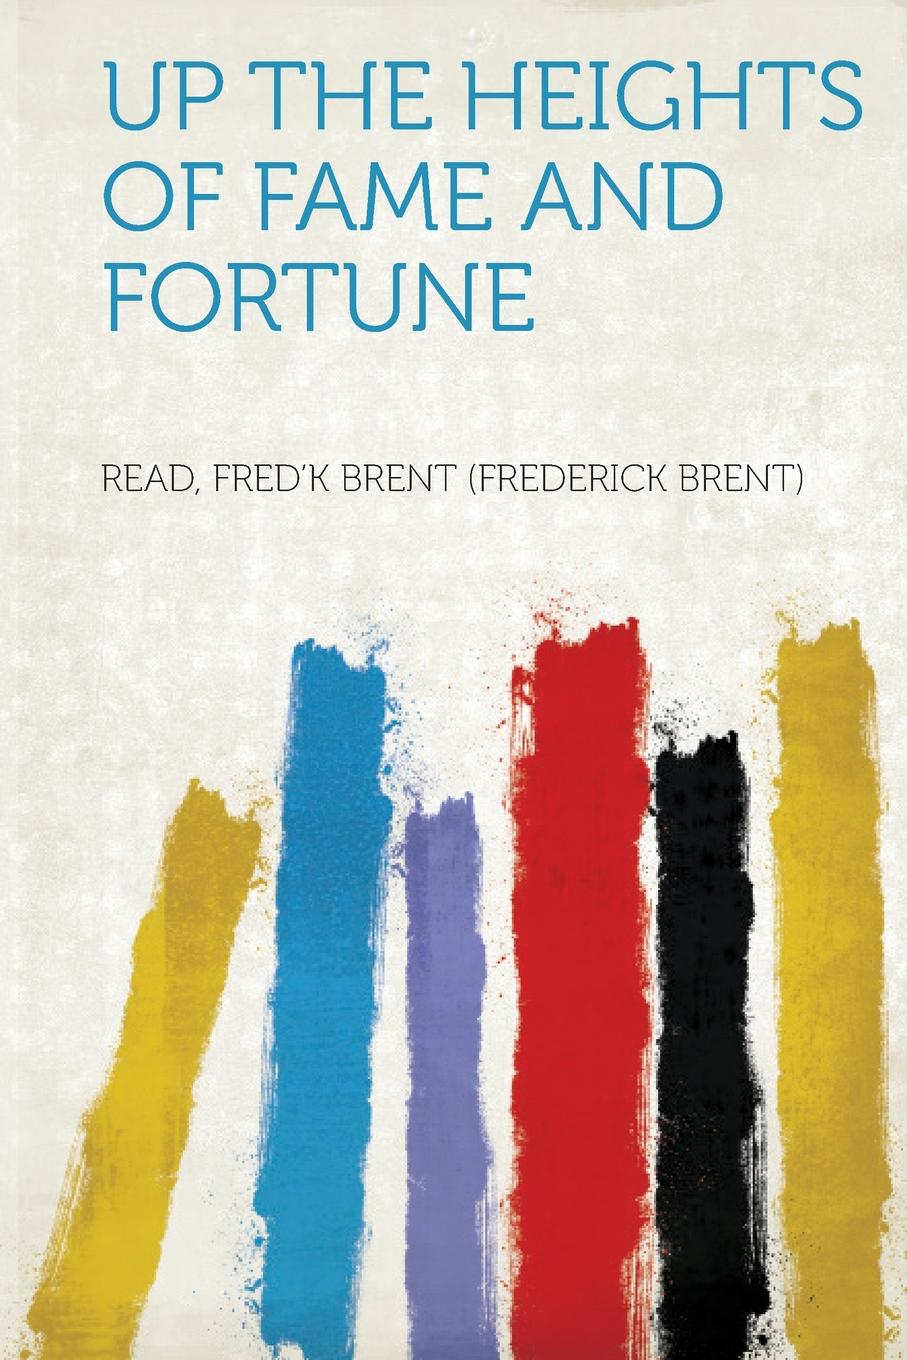 Read Fred''k Brent (Frederick Brent) Up the Heights of Fame and Fortune